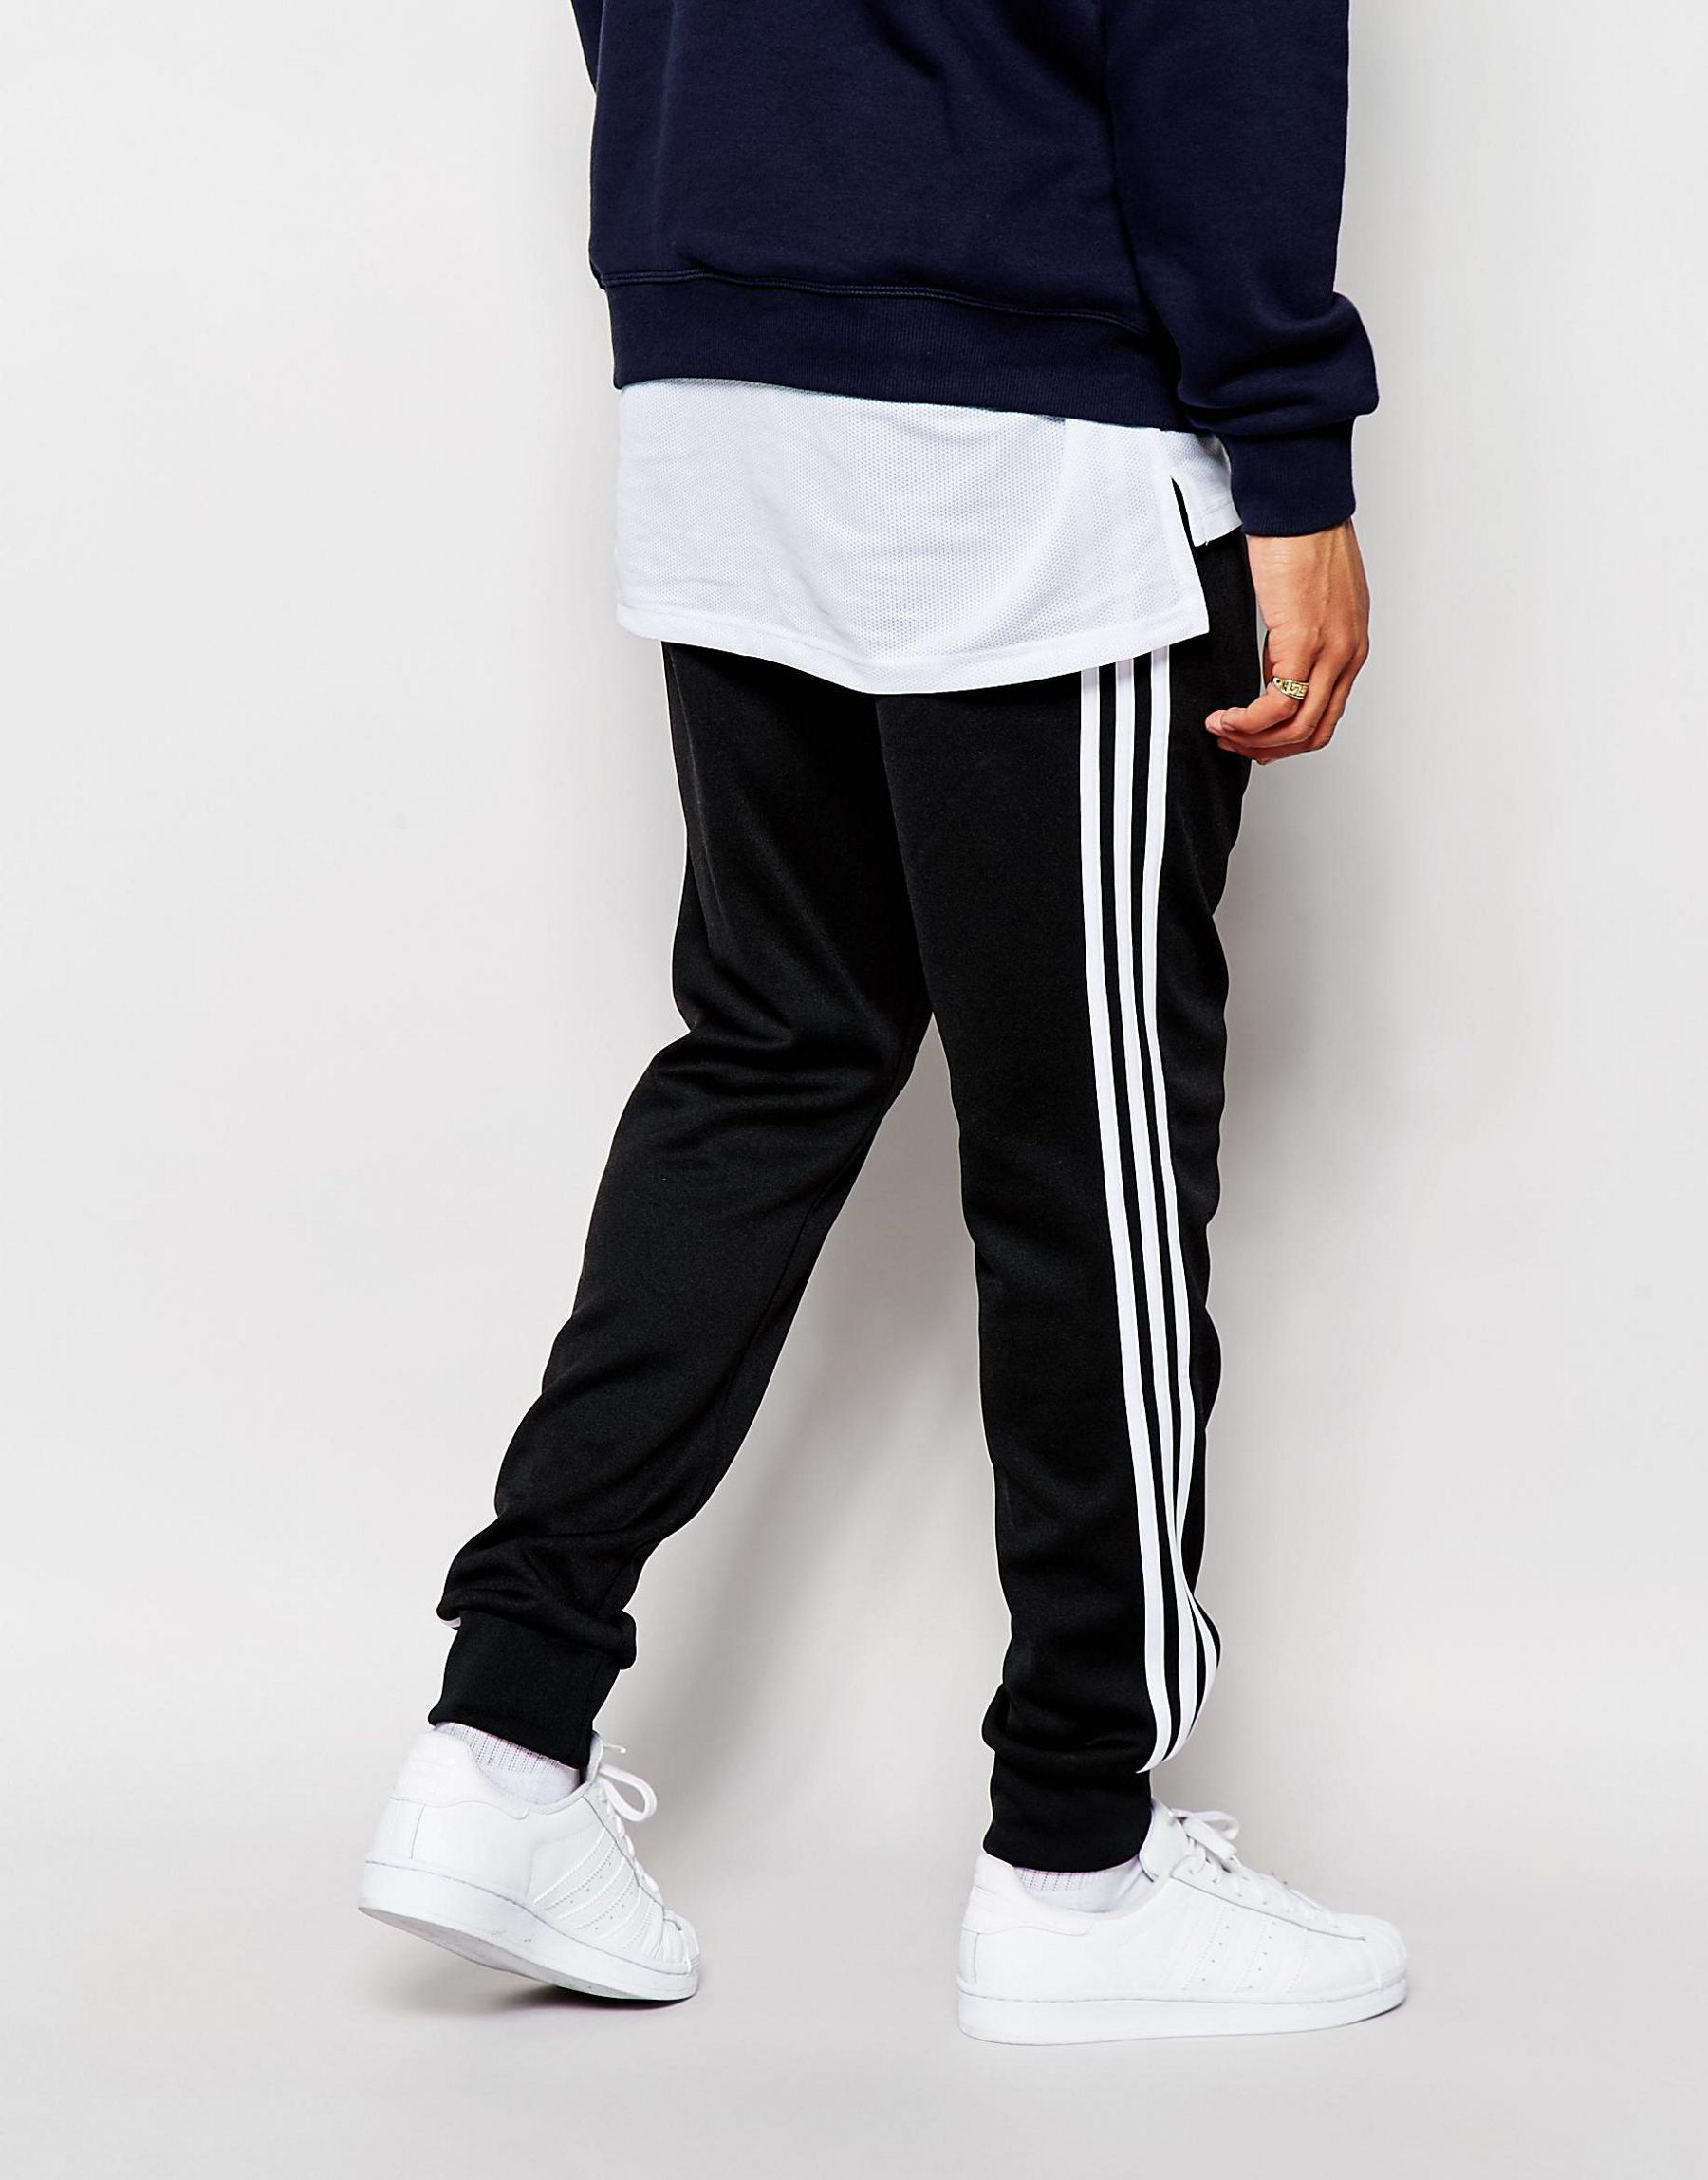 Paul Smith Suits >> Adidas originals Superstar Cuffed Track Pants Aj6960 in Black for Men   Lyst